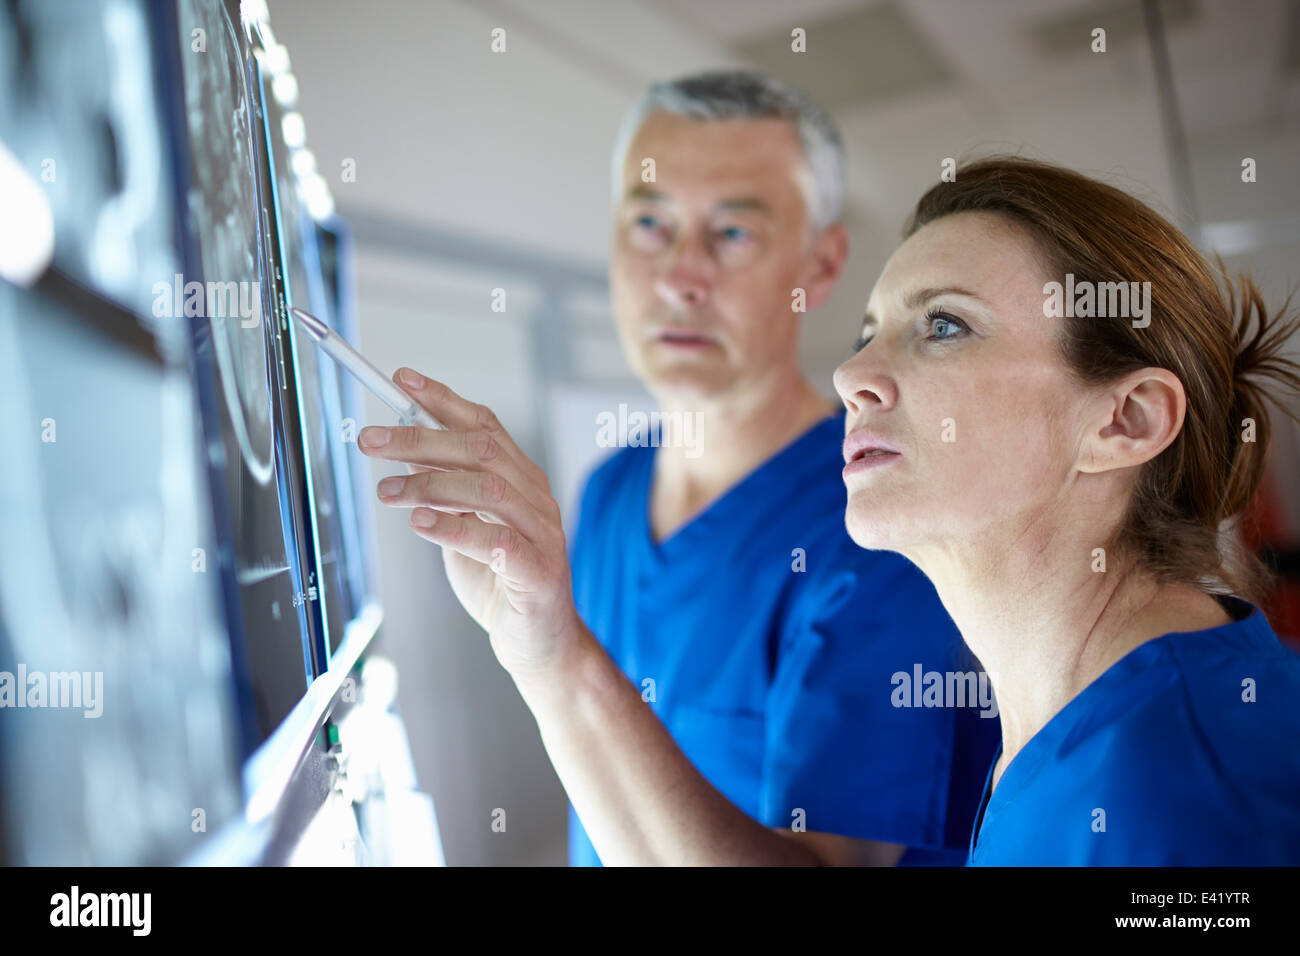 Radiologists looking at brain scans - Stock Image